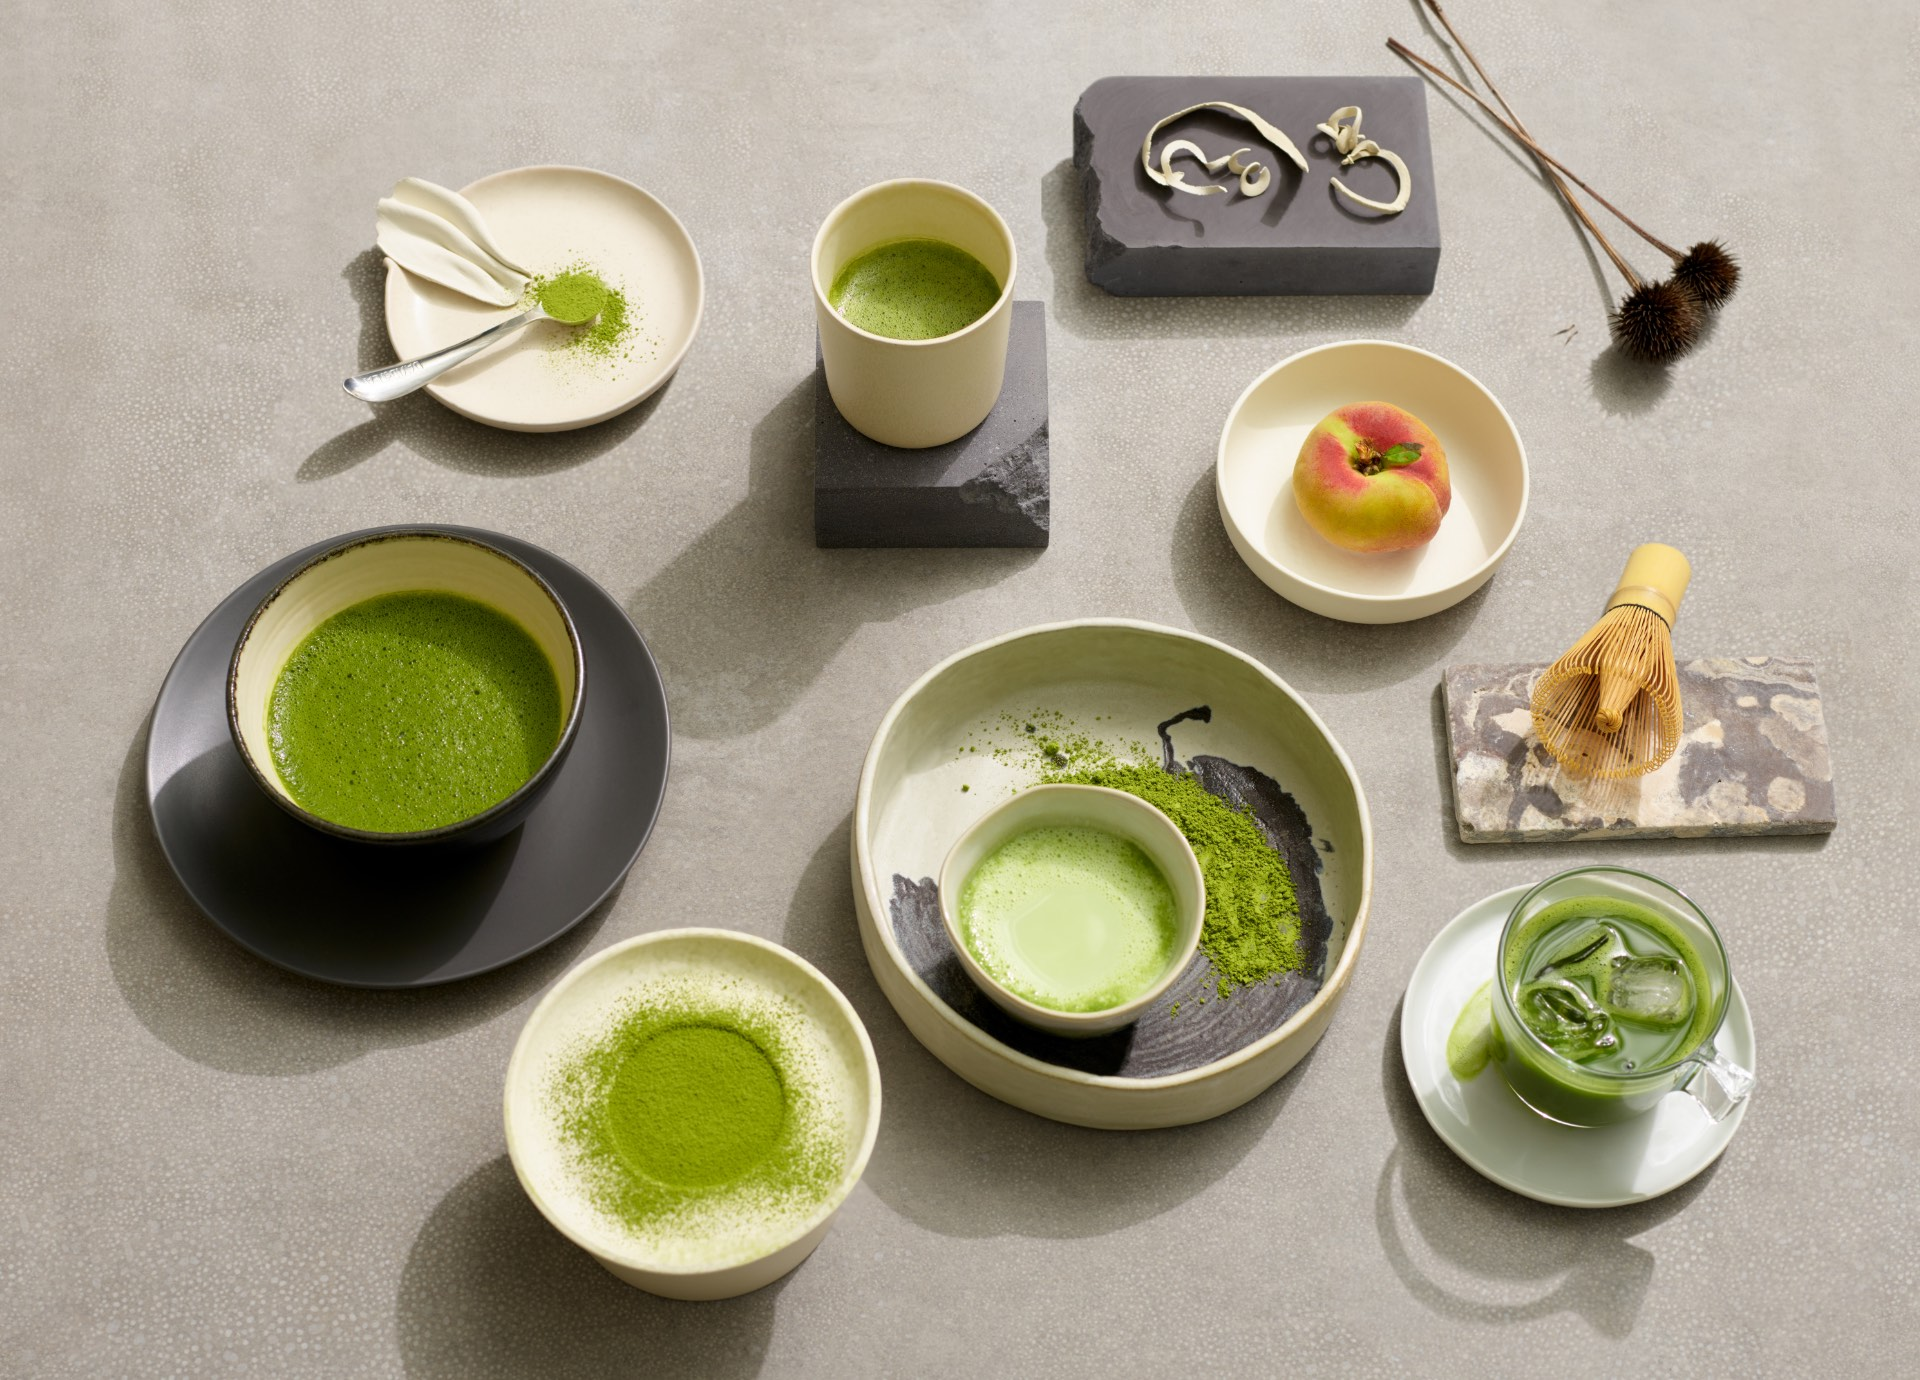 Matcha green tea prepared various ways in ceramic mugs, plates and bowls.